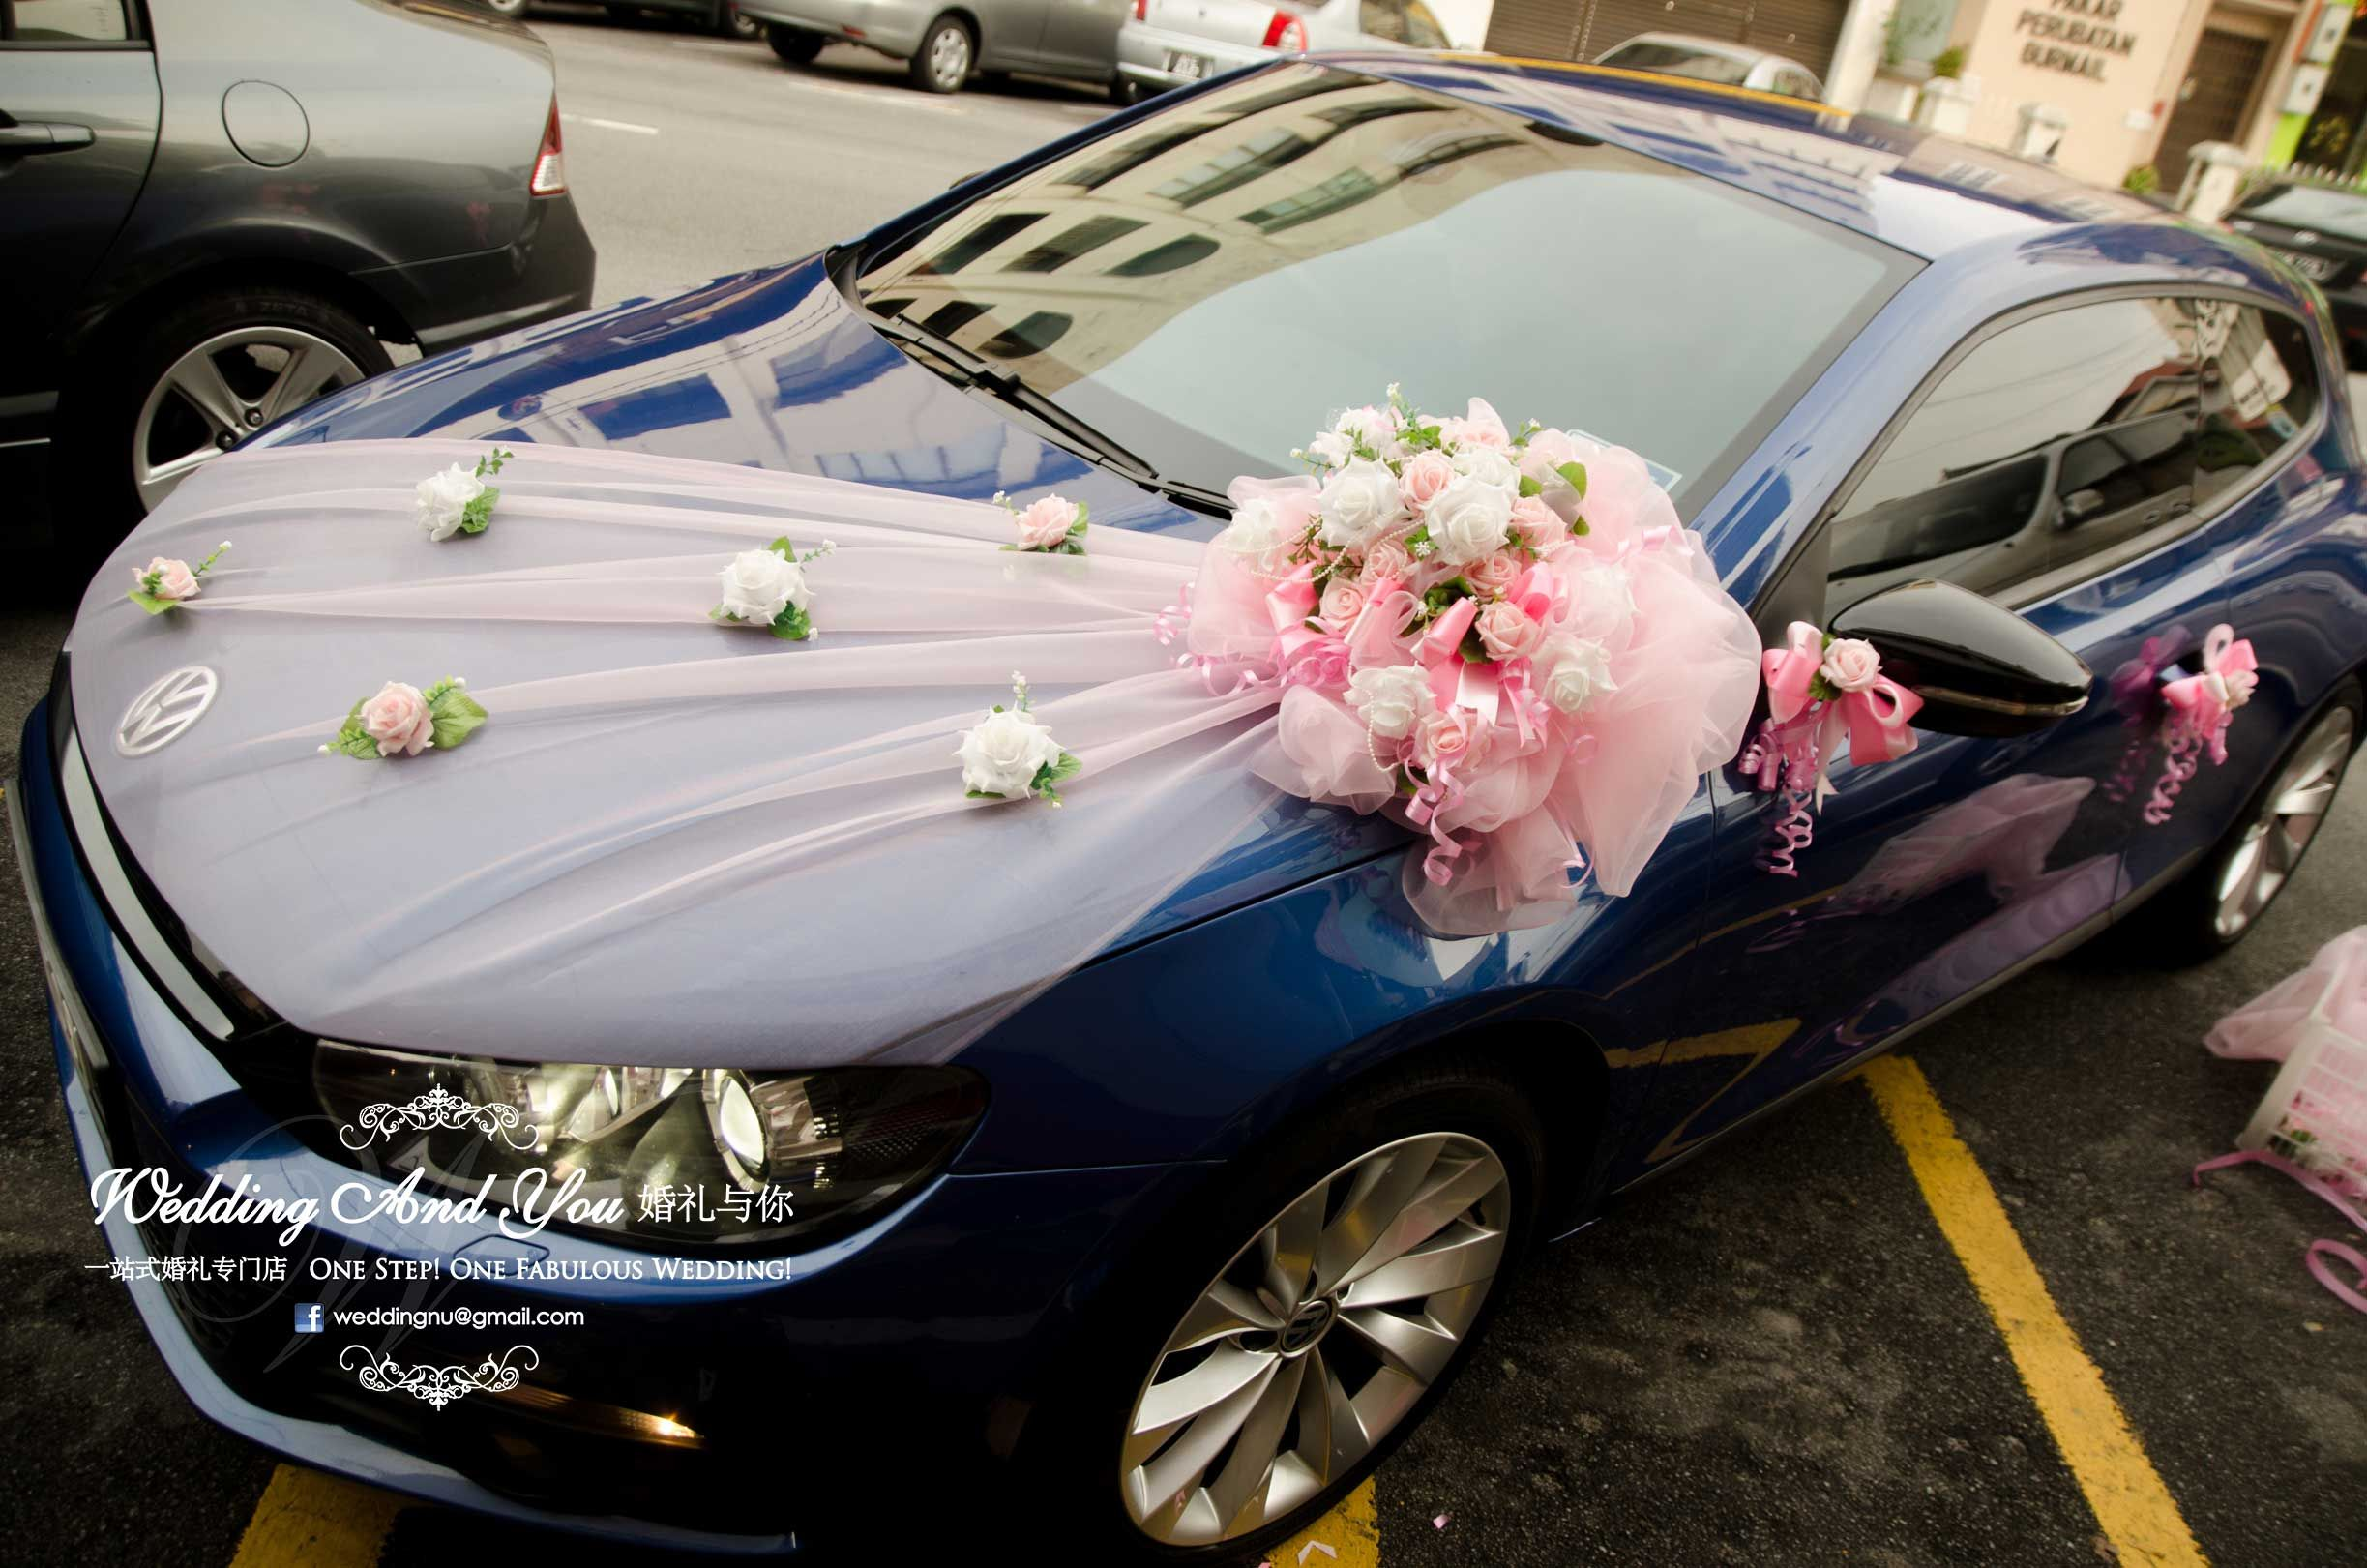 Wedding car decoration google zoeken wedding deco pinterest wedding car decoration google zoeken junglespirit